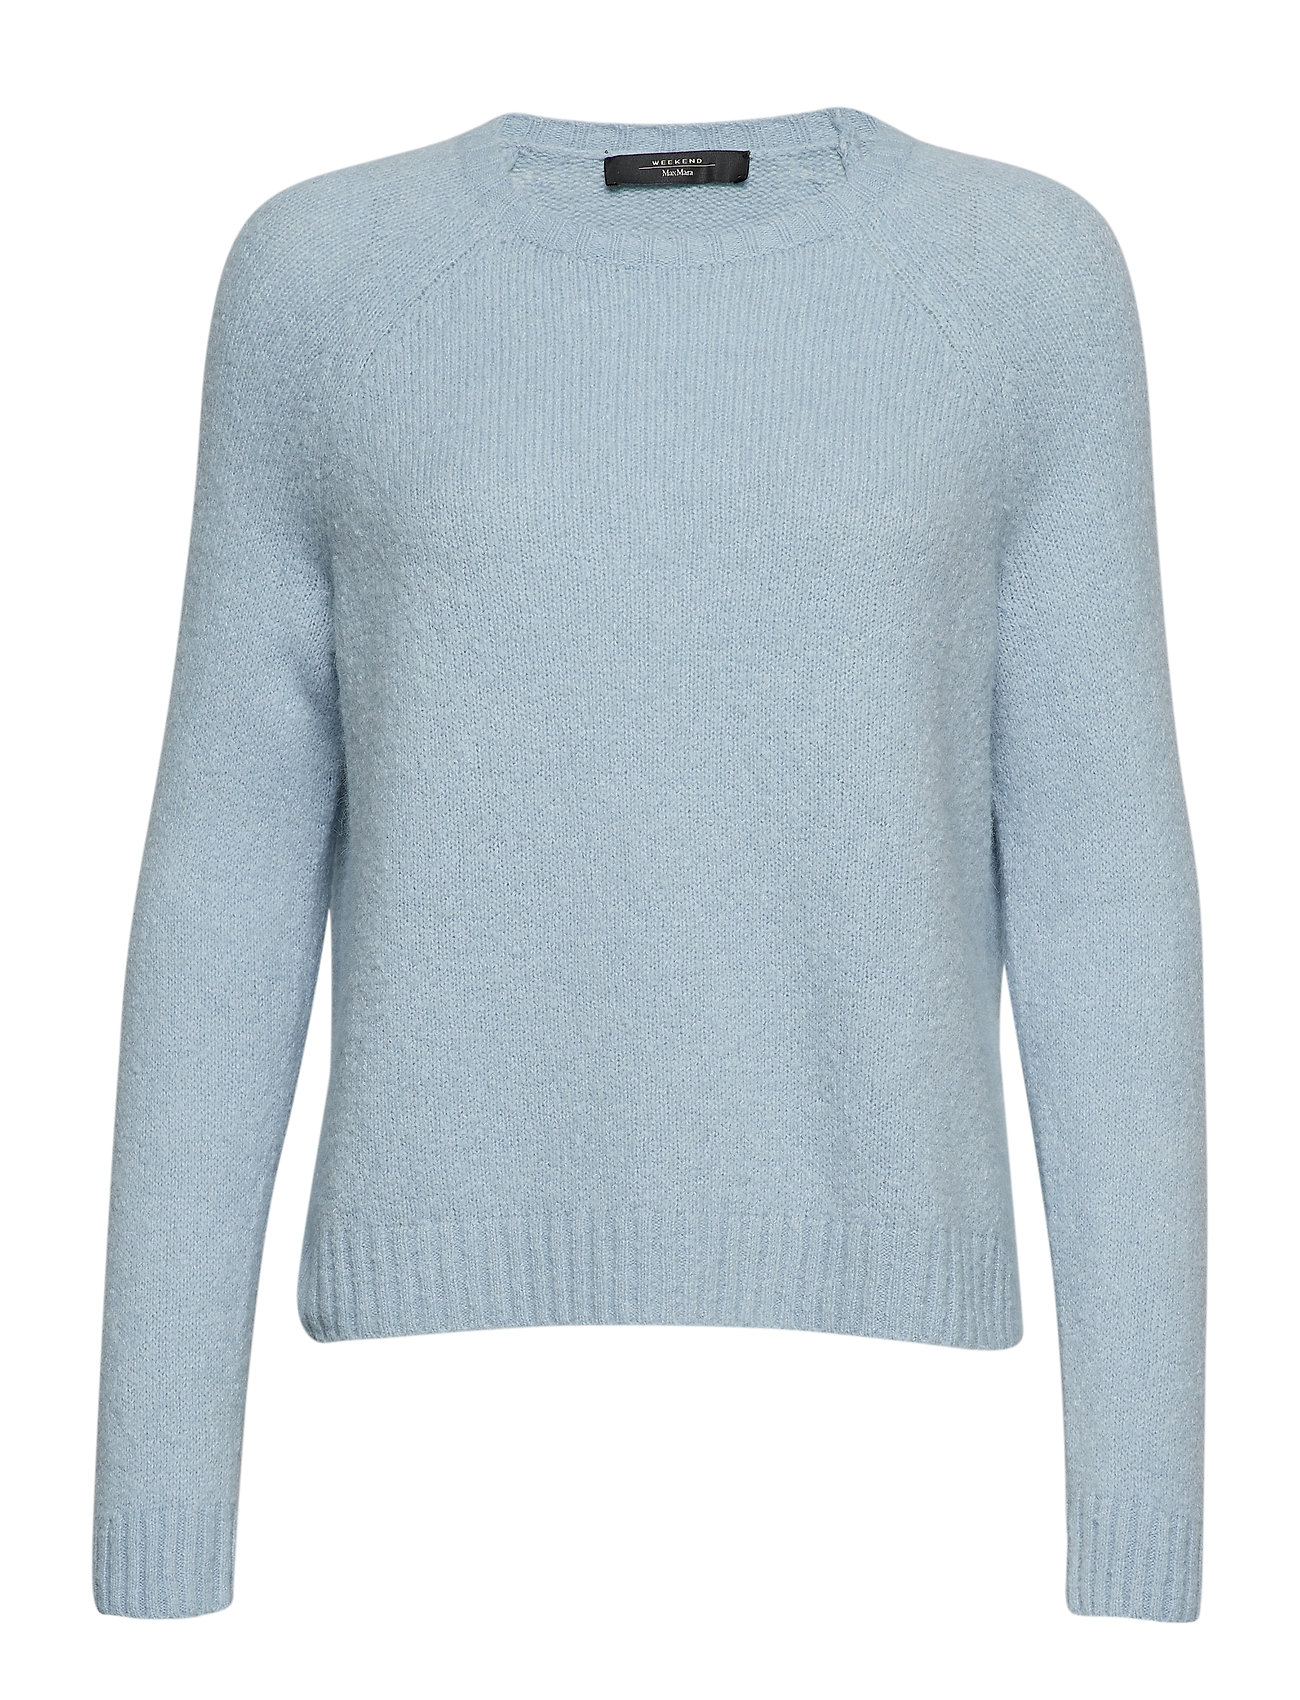 Weekend Max Mara CALAMO - LIGHT BLUE